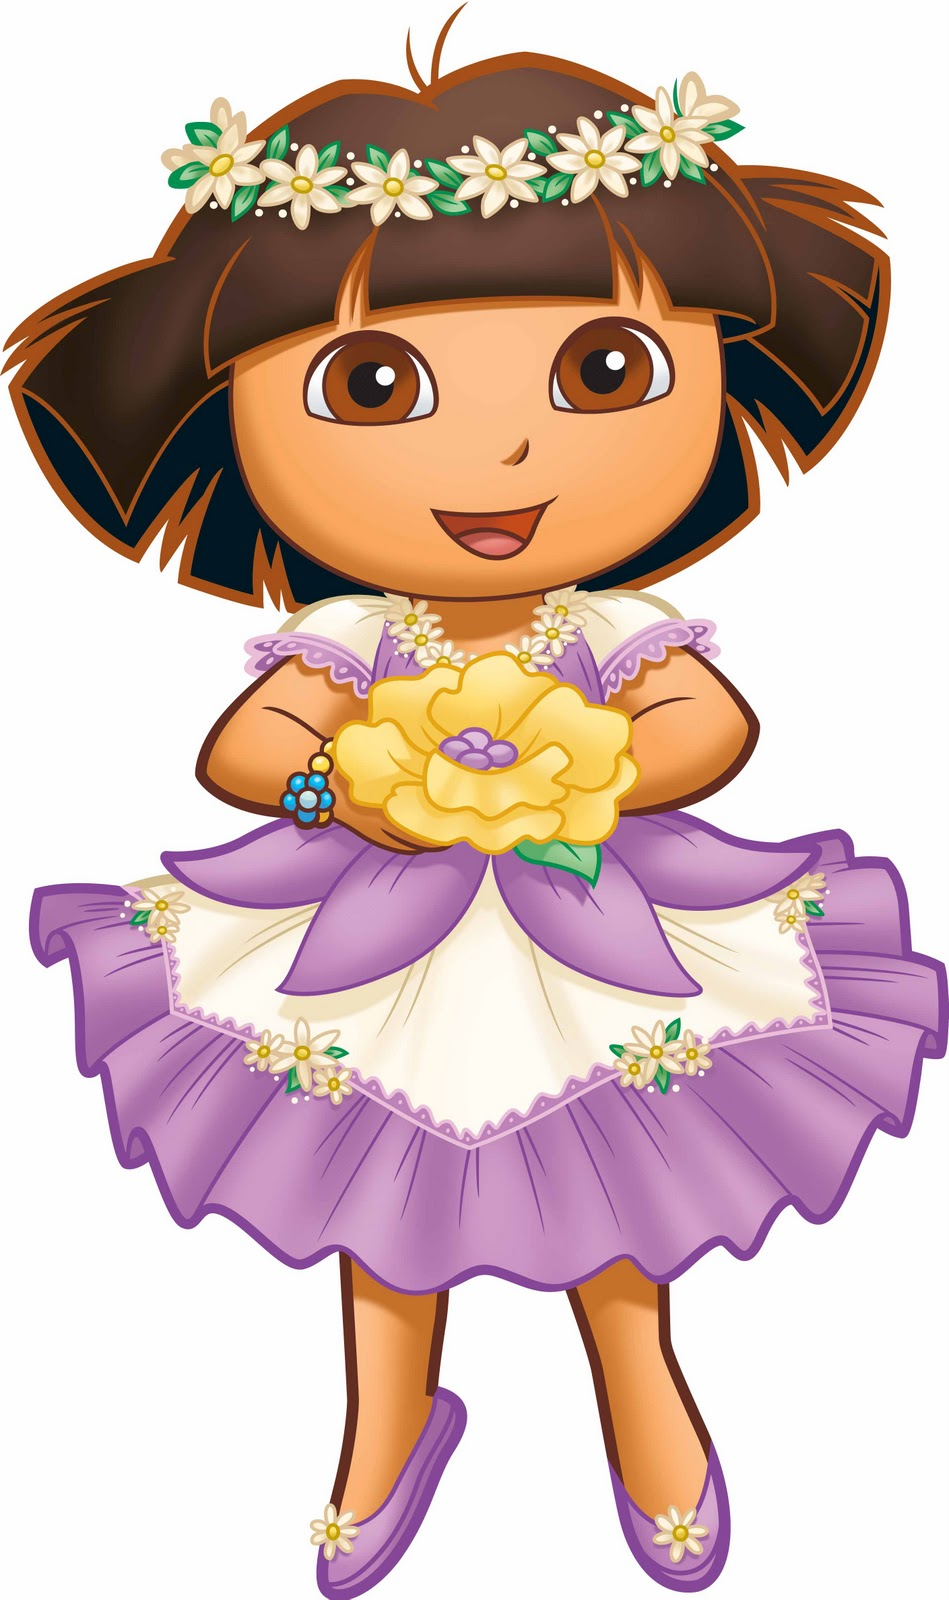 Dora_in_Enchanted_Forest_dress